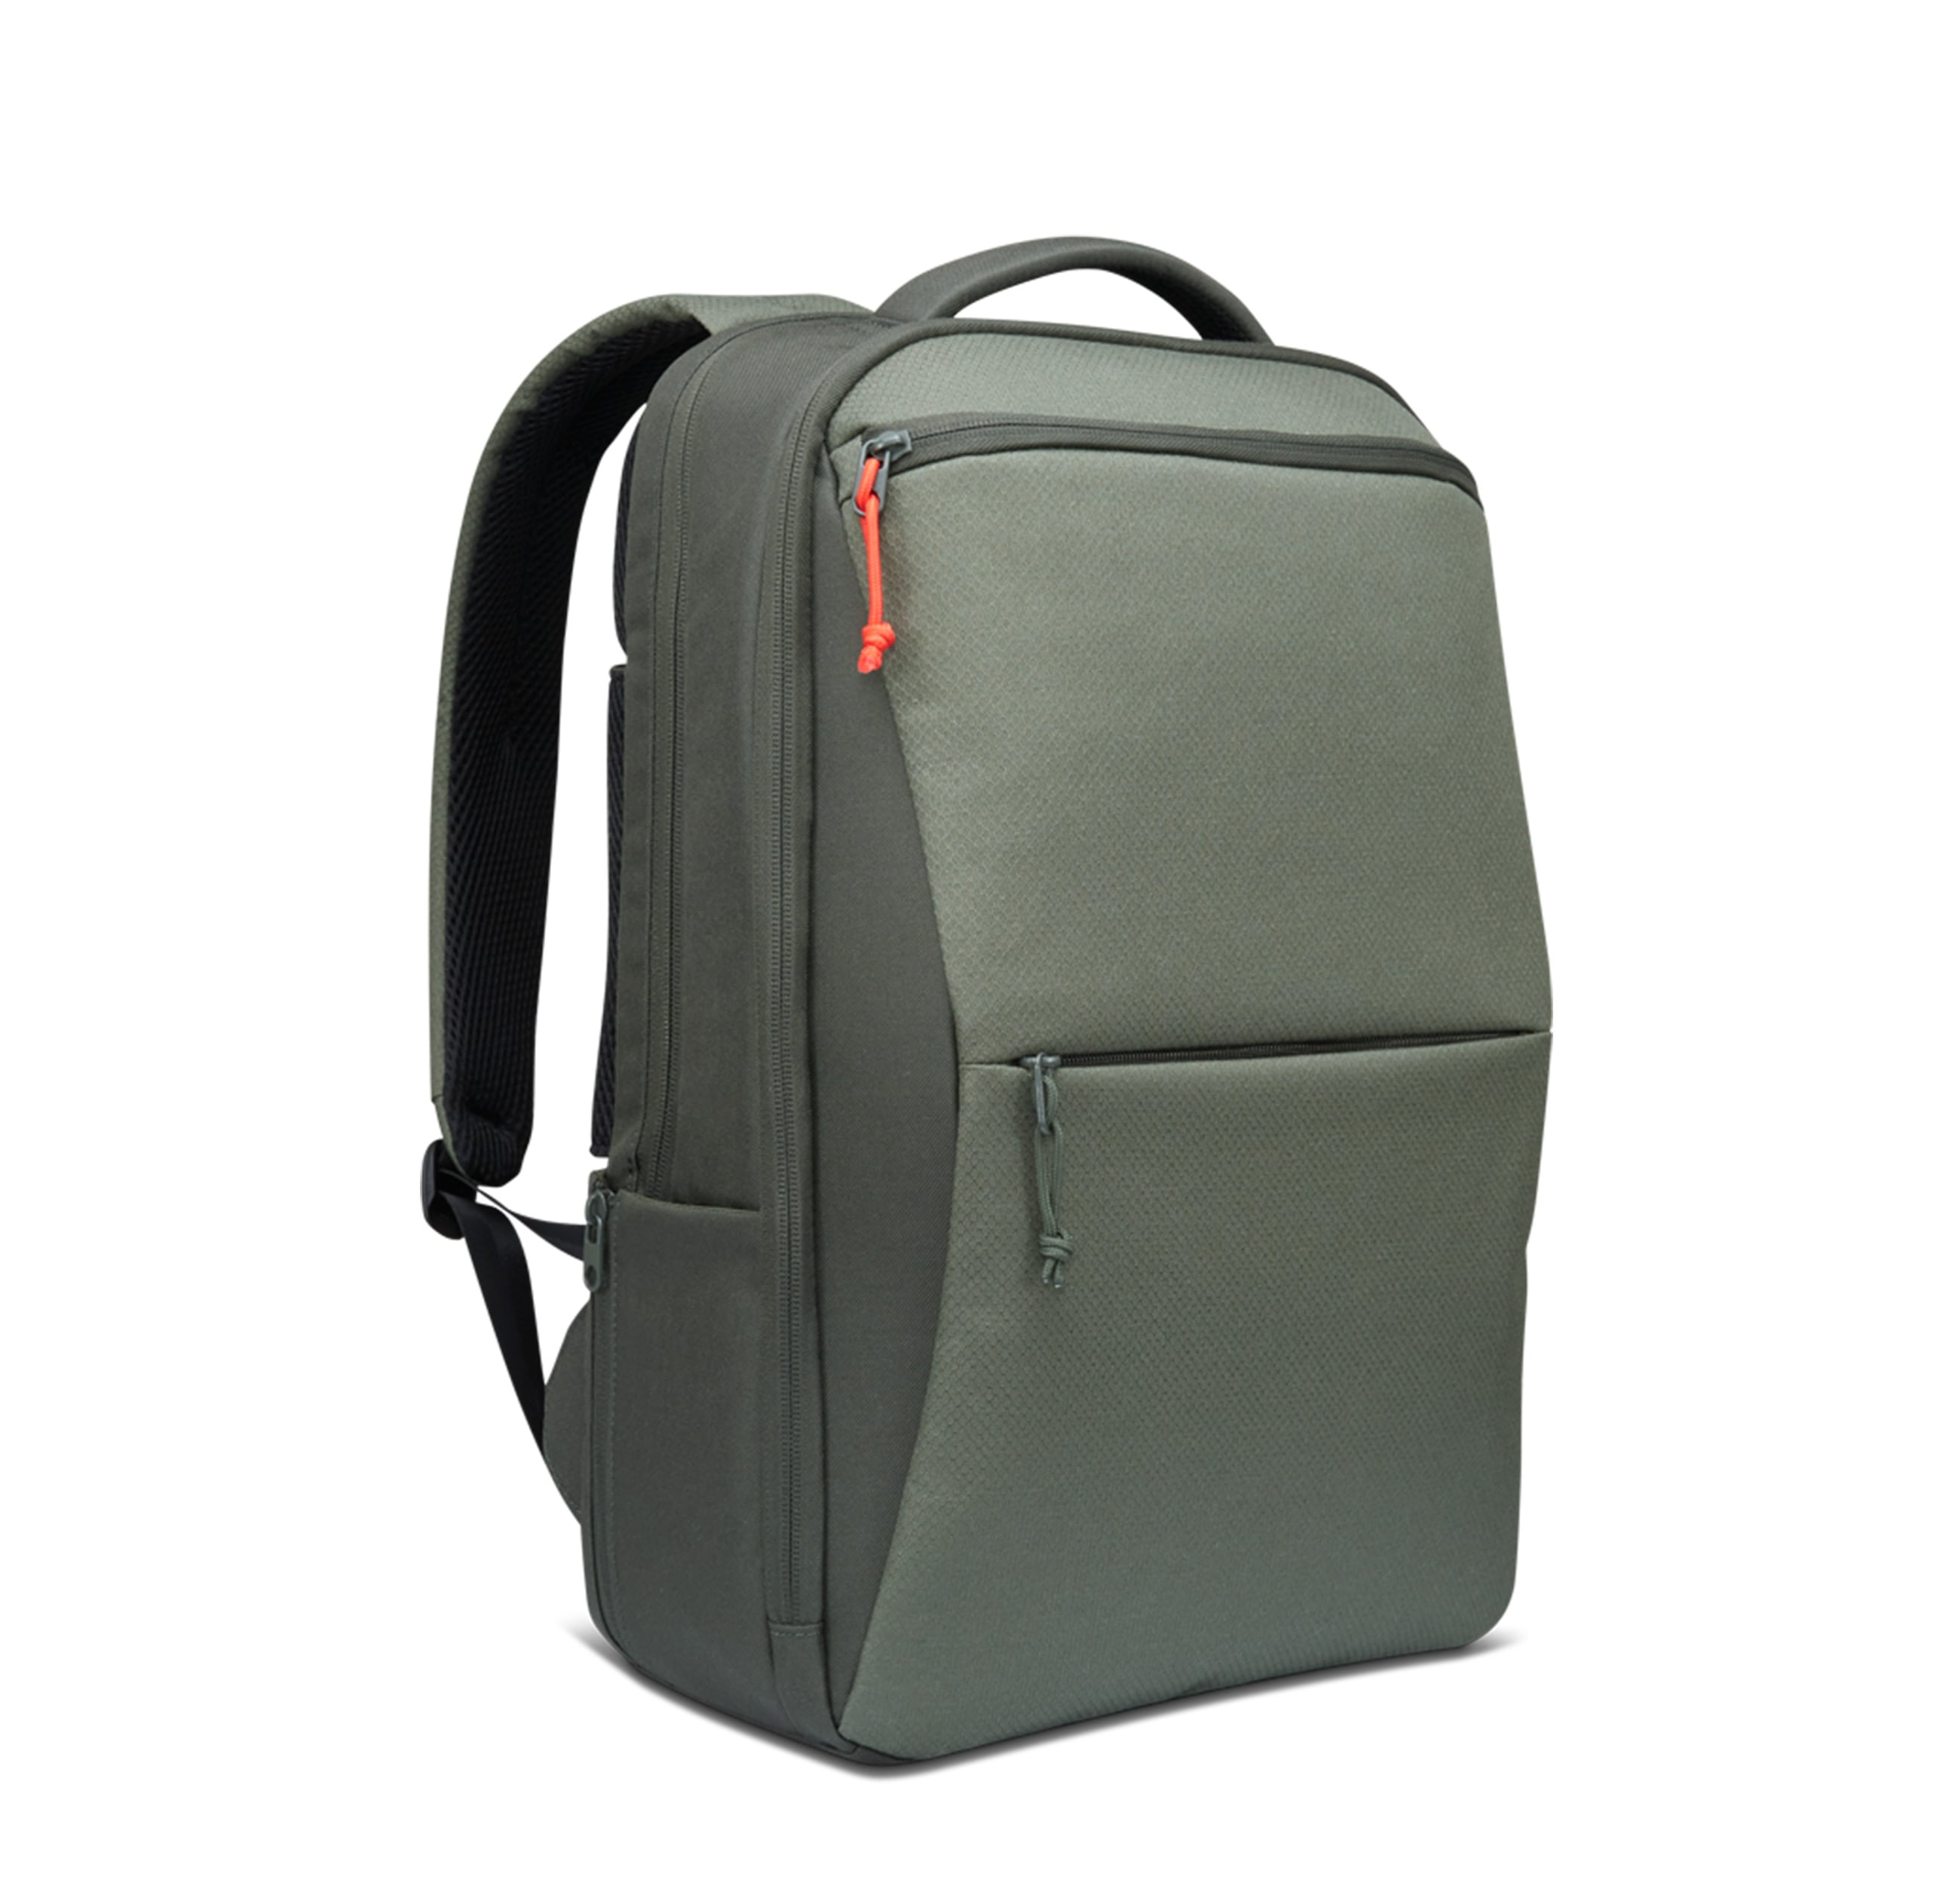 The limited edition Lenovo Eco Pro Backpack available  in Moss Green color